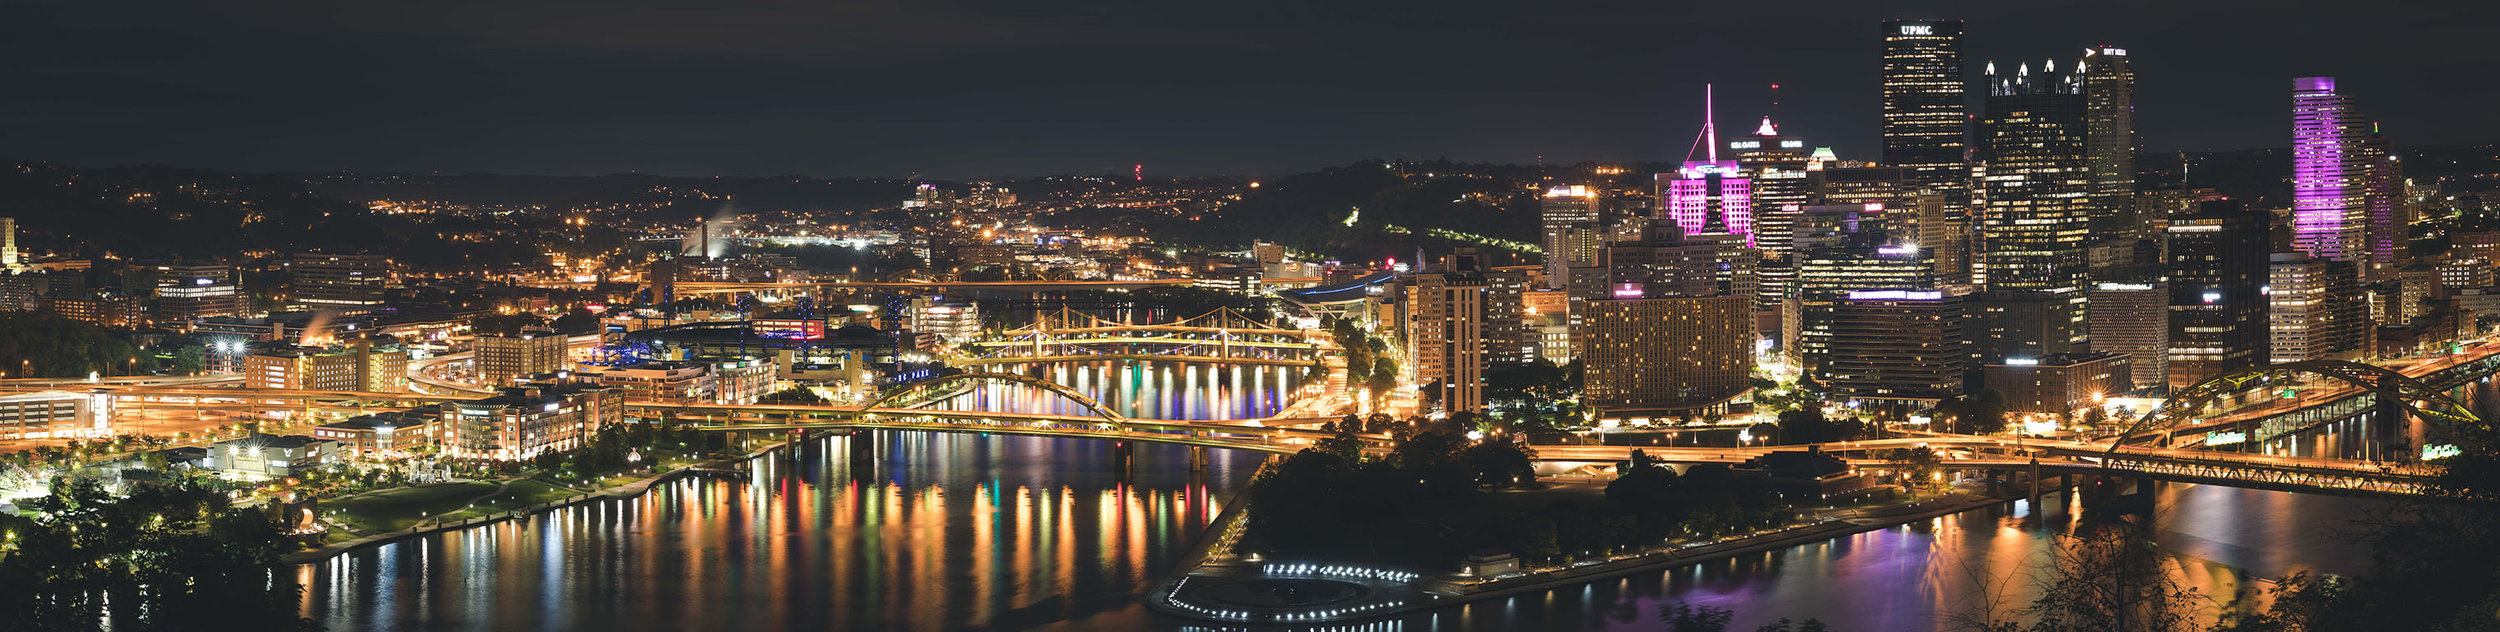 The Bridges of Pittsburgh